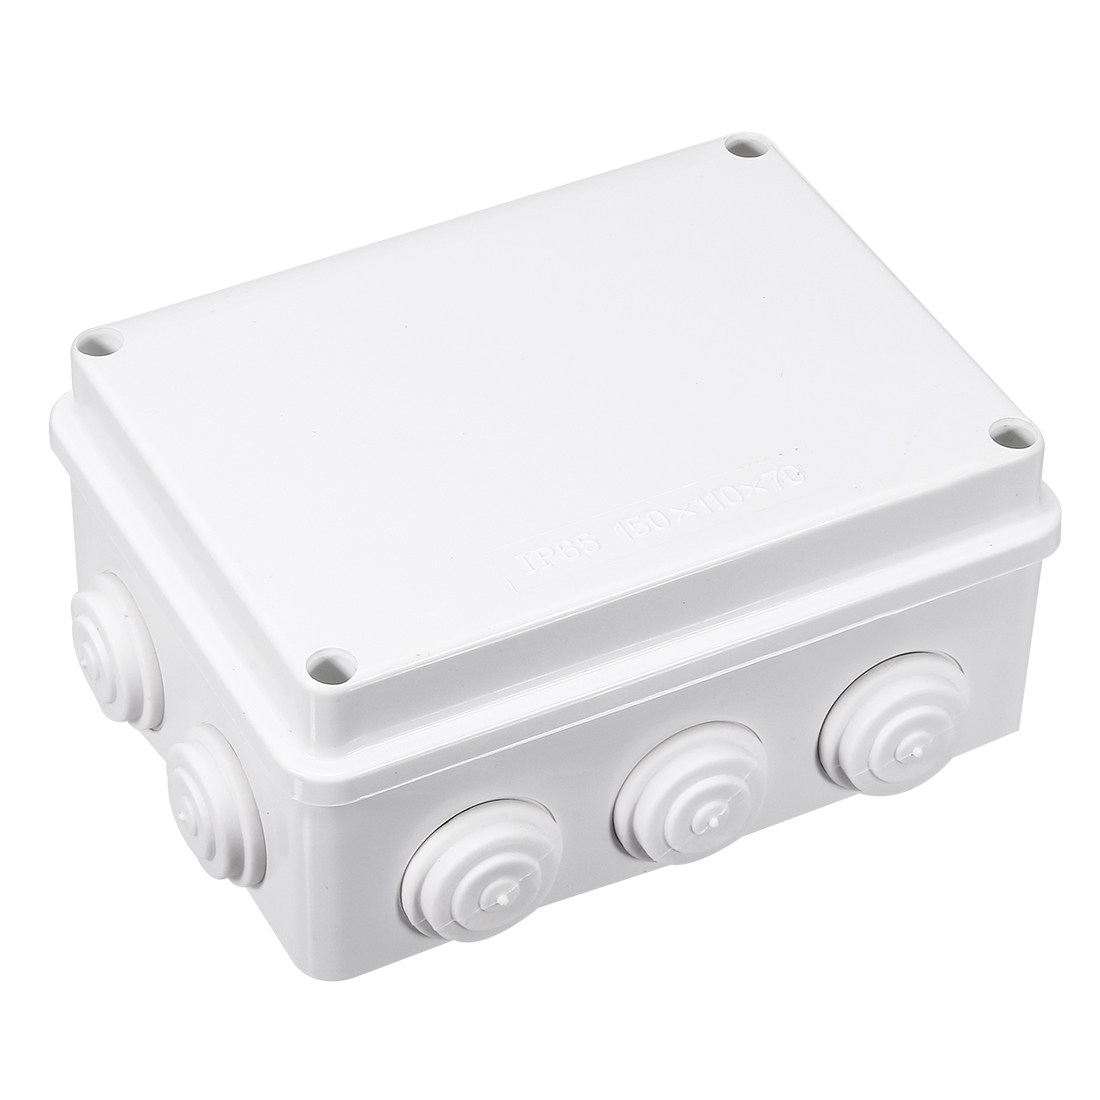 ABS IP65 Waterproof 28mm Hole 10 Cable Entries Junction Box 150x110x70mm